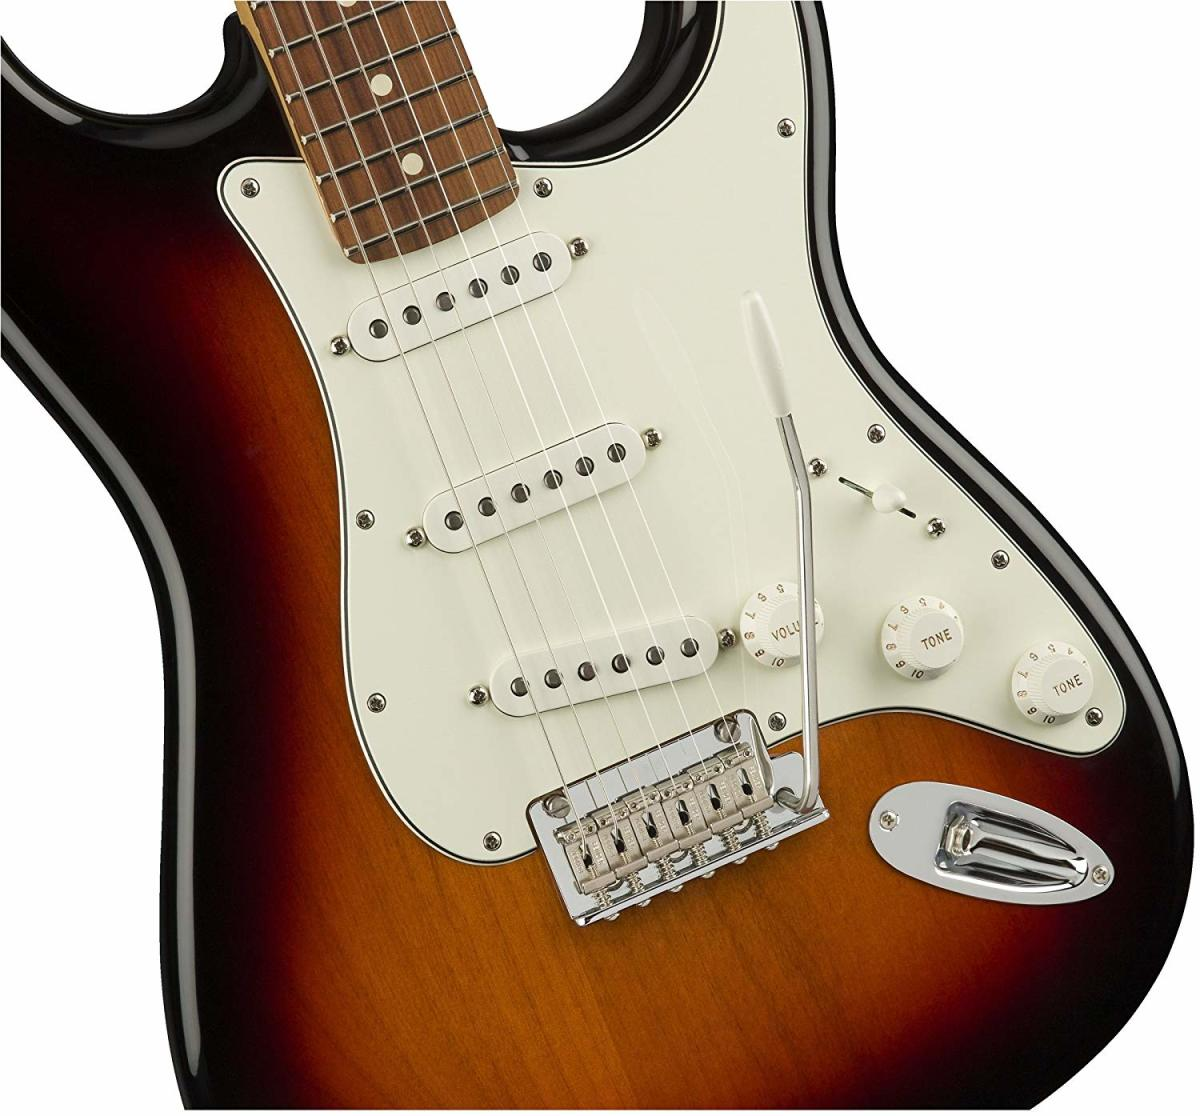 The Fender Player Stratocaster is an affordable alternative to the Fender Stratocaster.